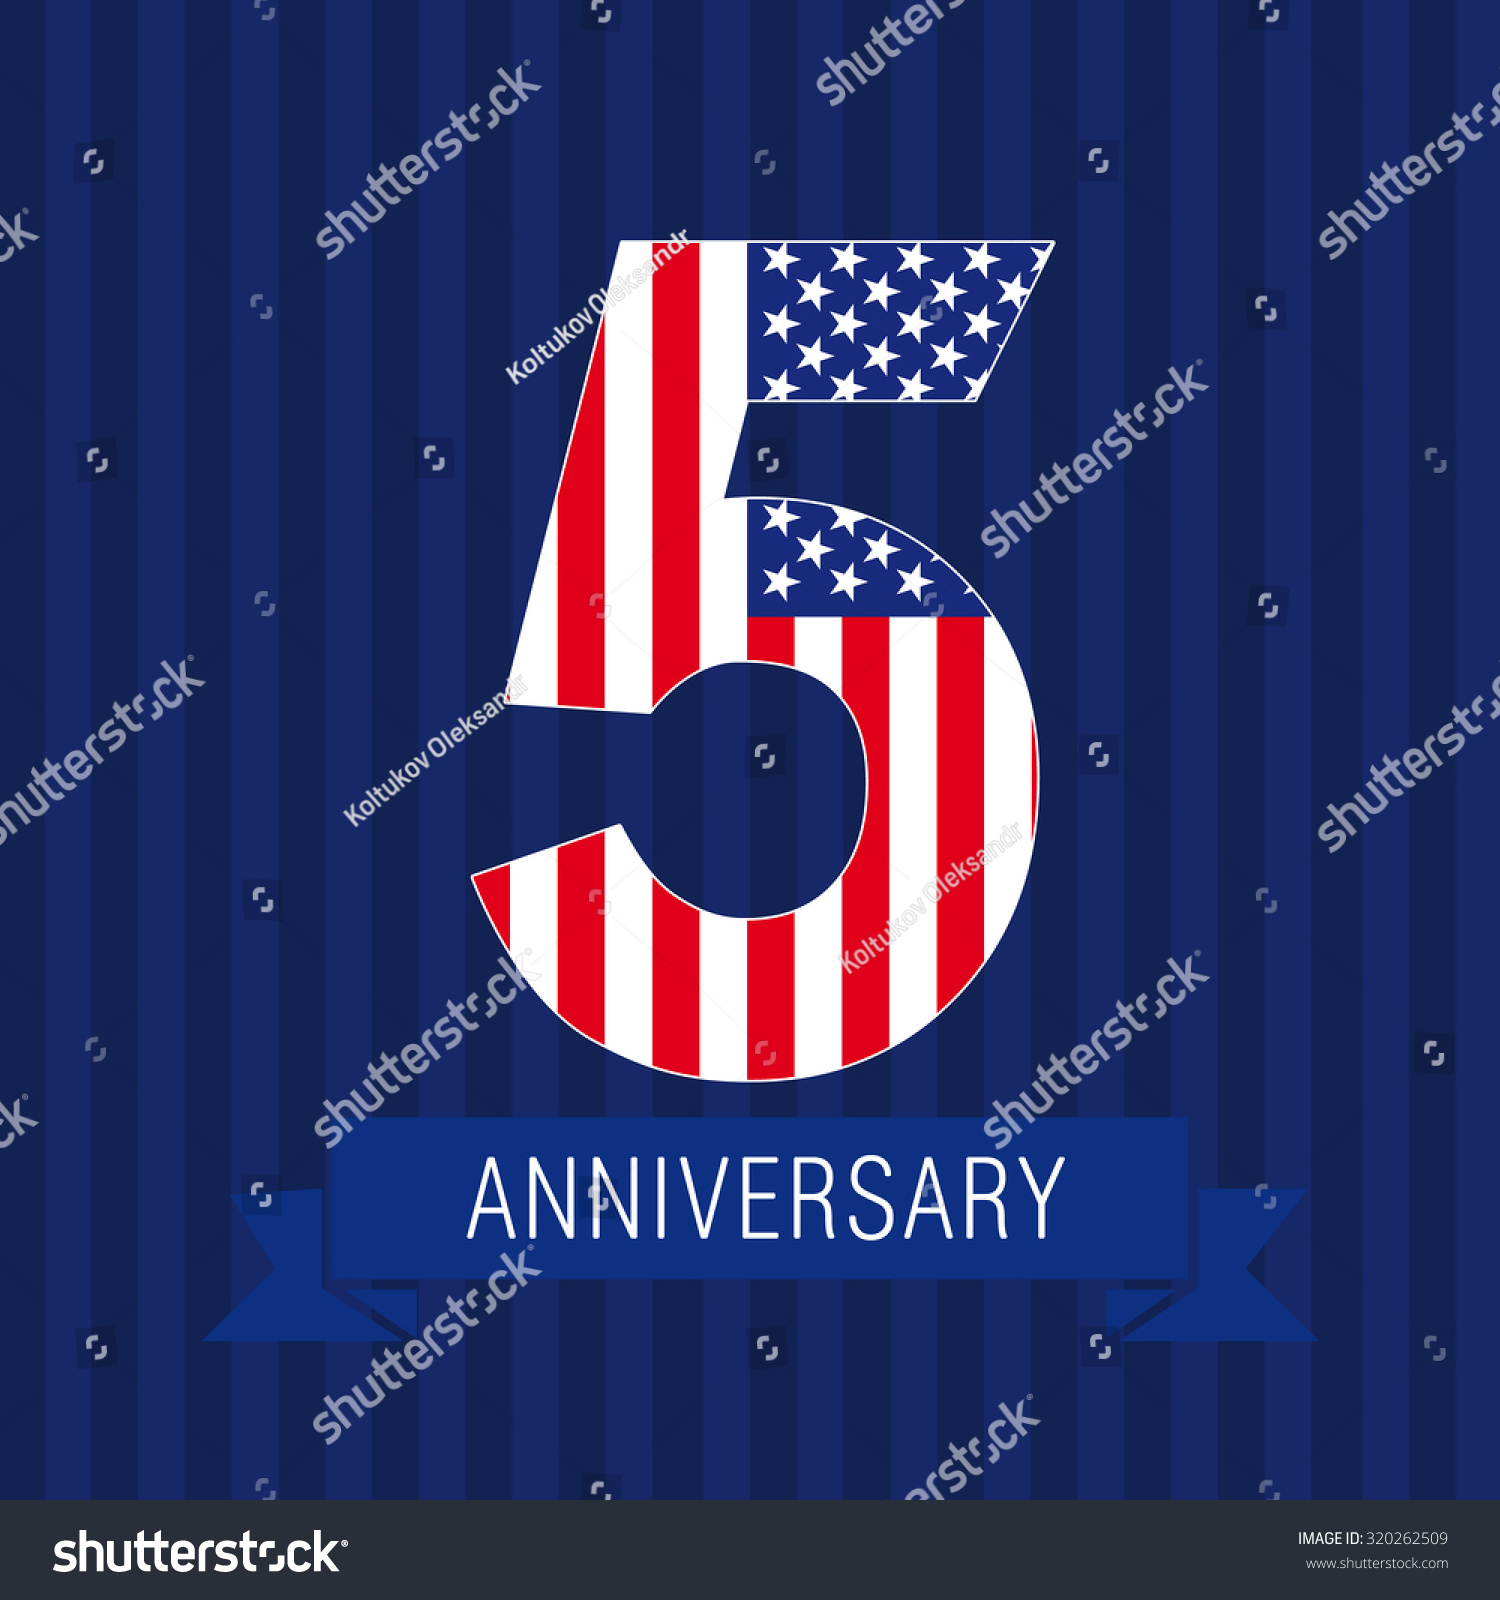 anniversary 5 us flag logo template stock vector 320262509